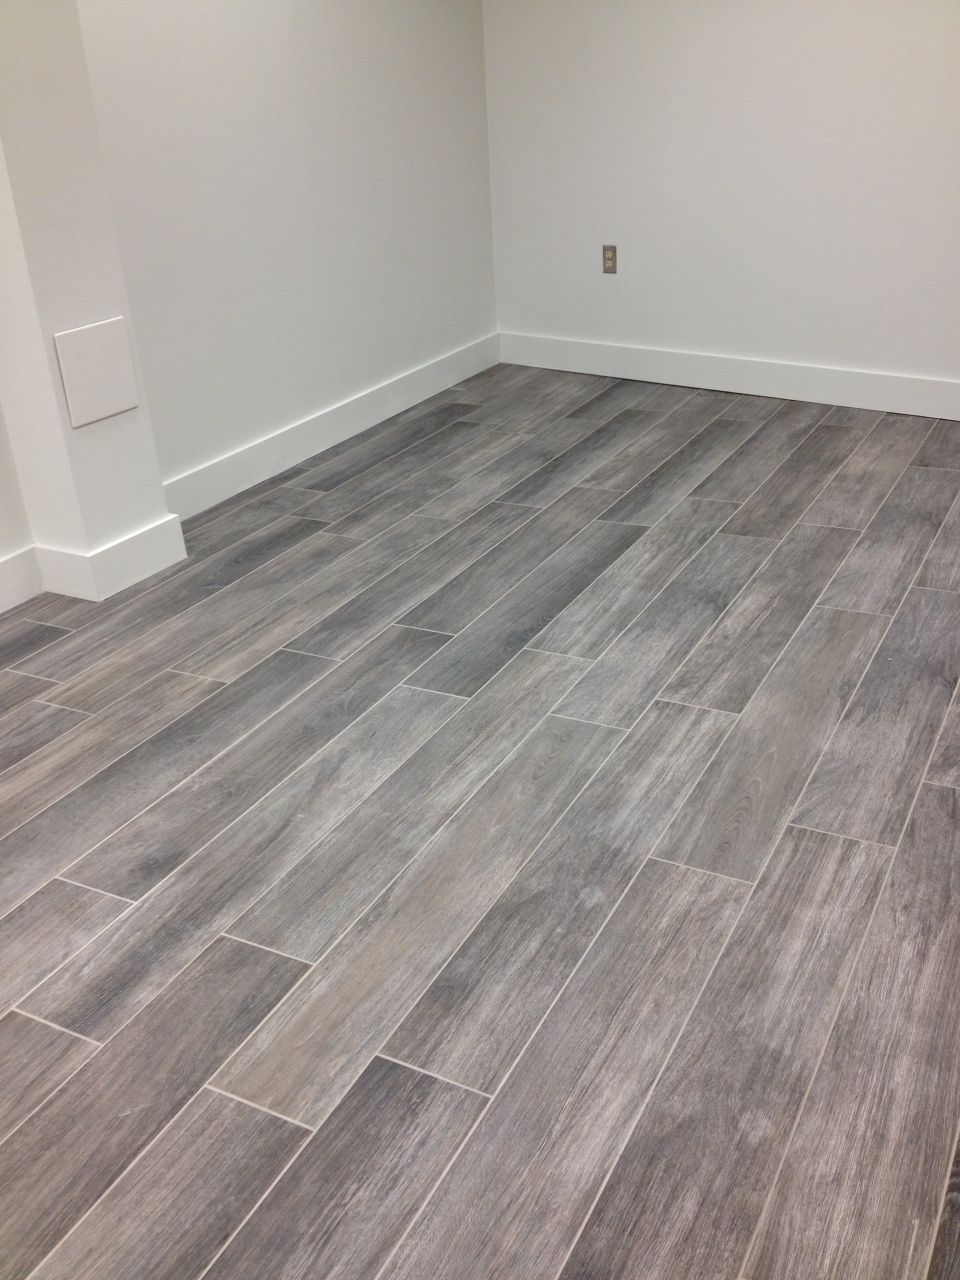 hardwood floor tiles gray wood tile floor no3lcd6n8 YCVKZOM